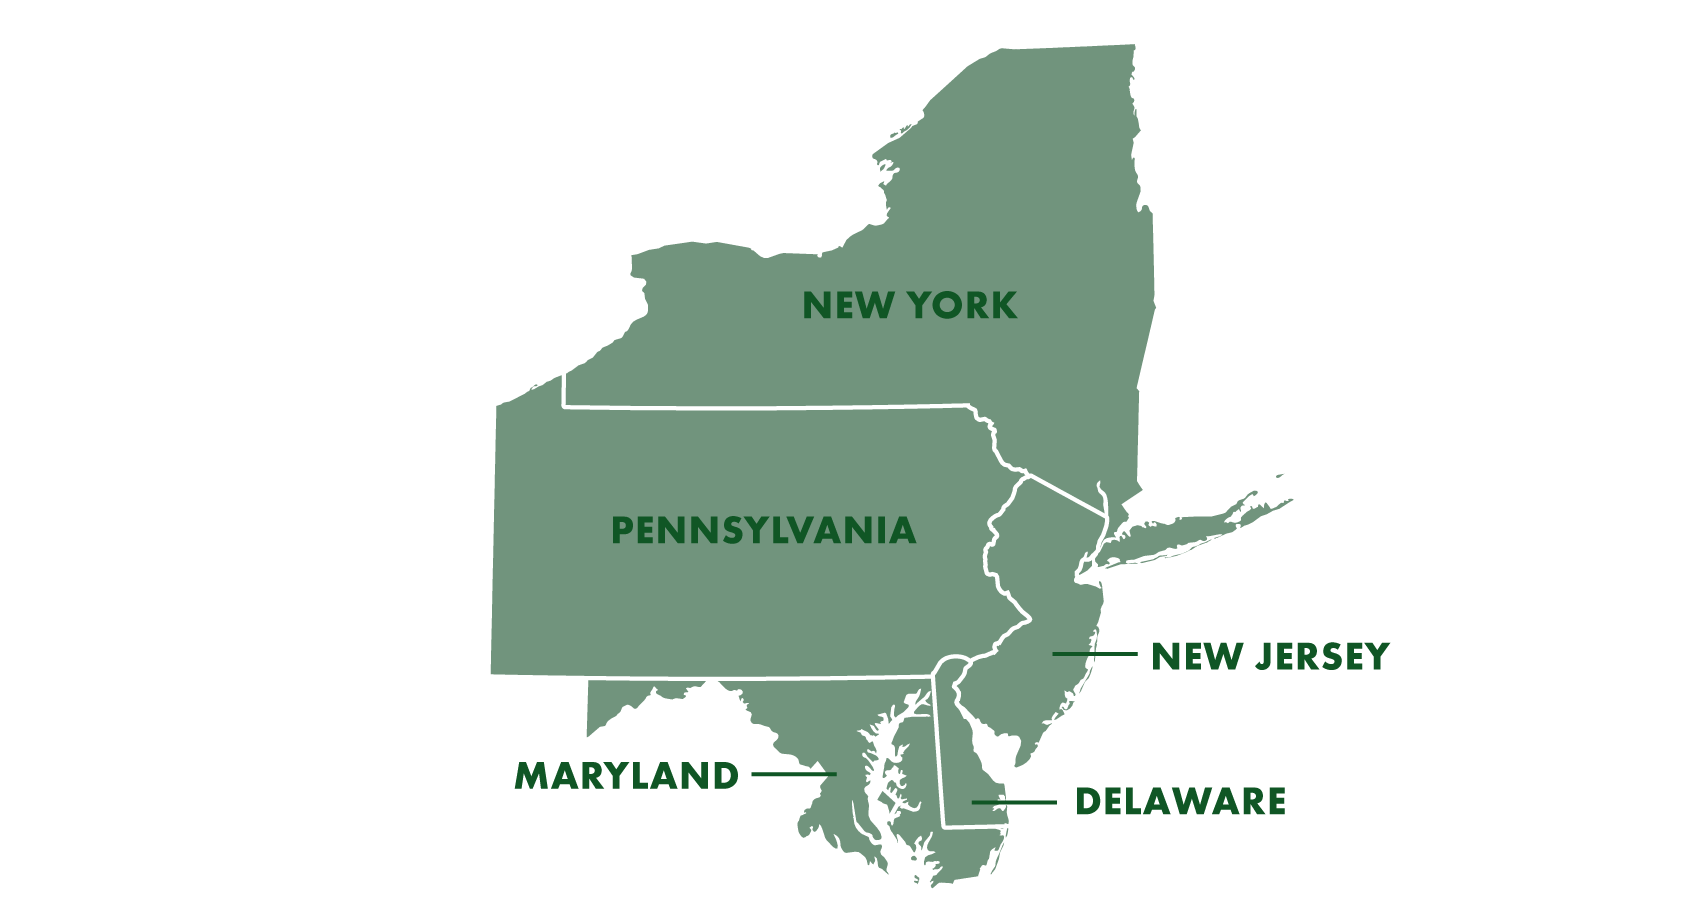 Map Of New York Pennsylvania And New Jersey.Territory Eno Industrial Sales